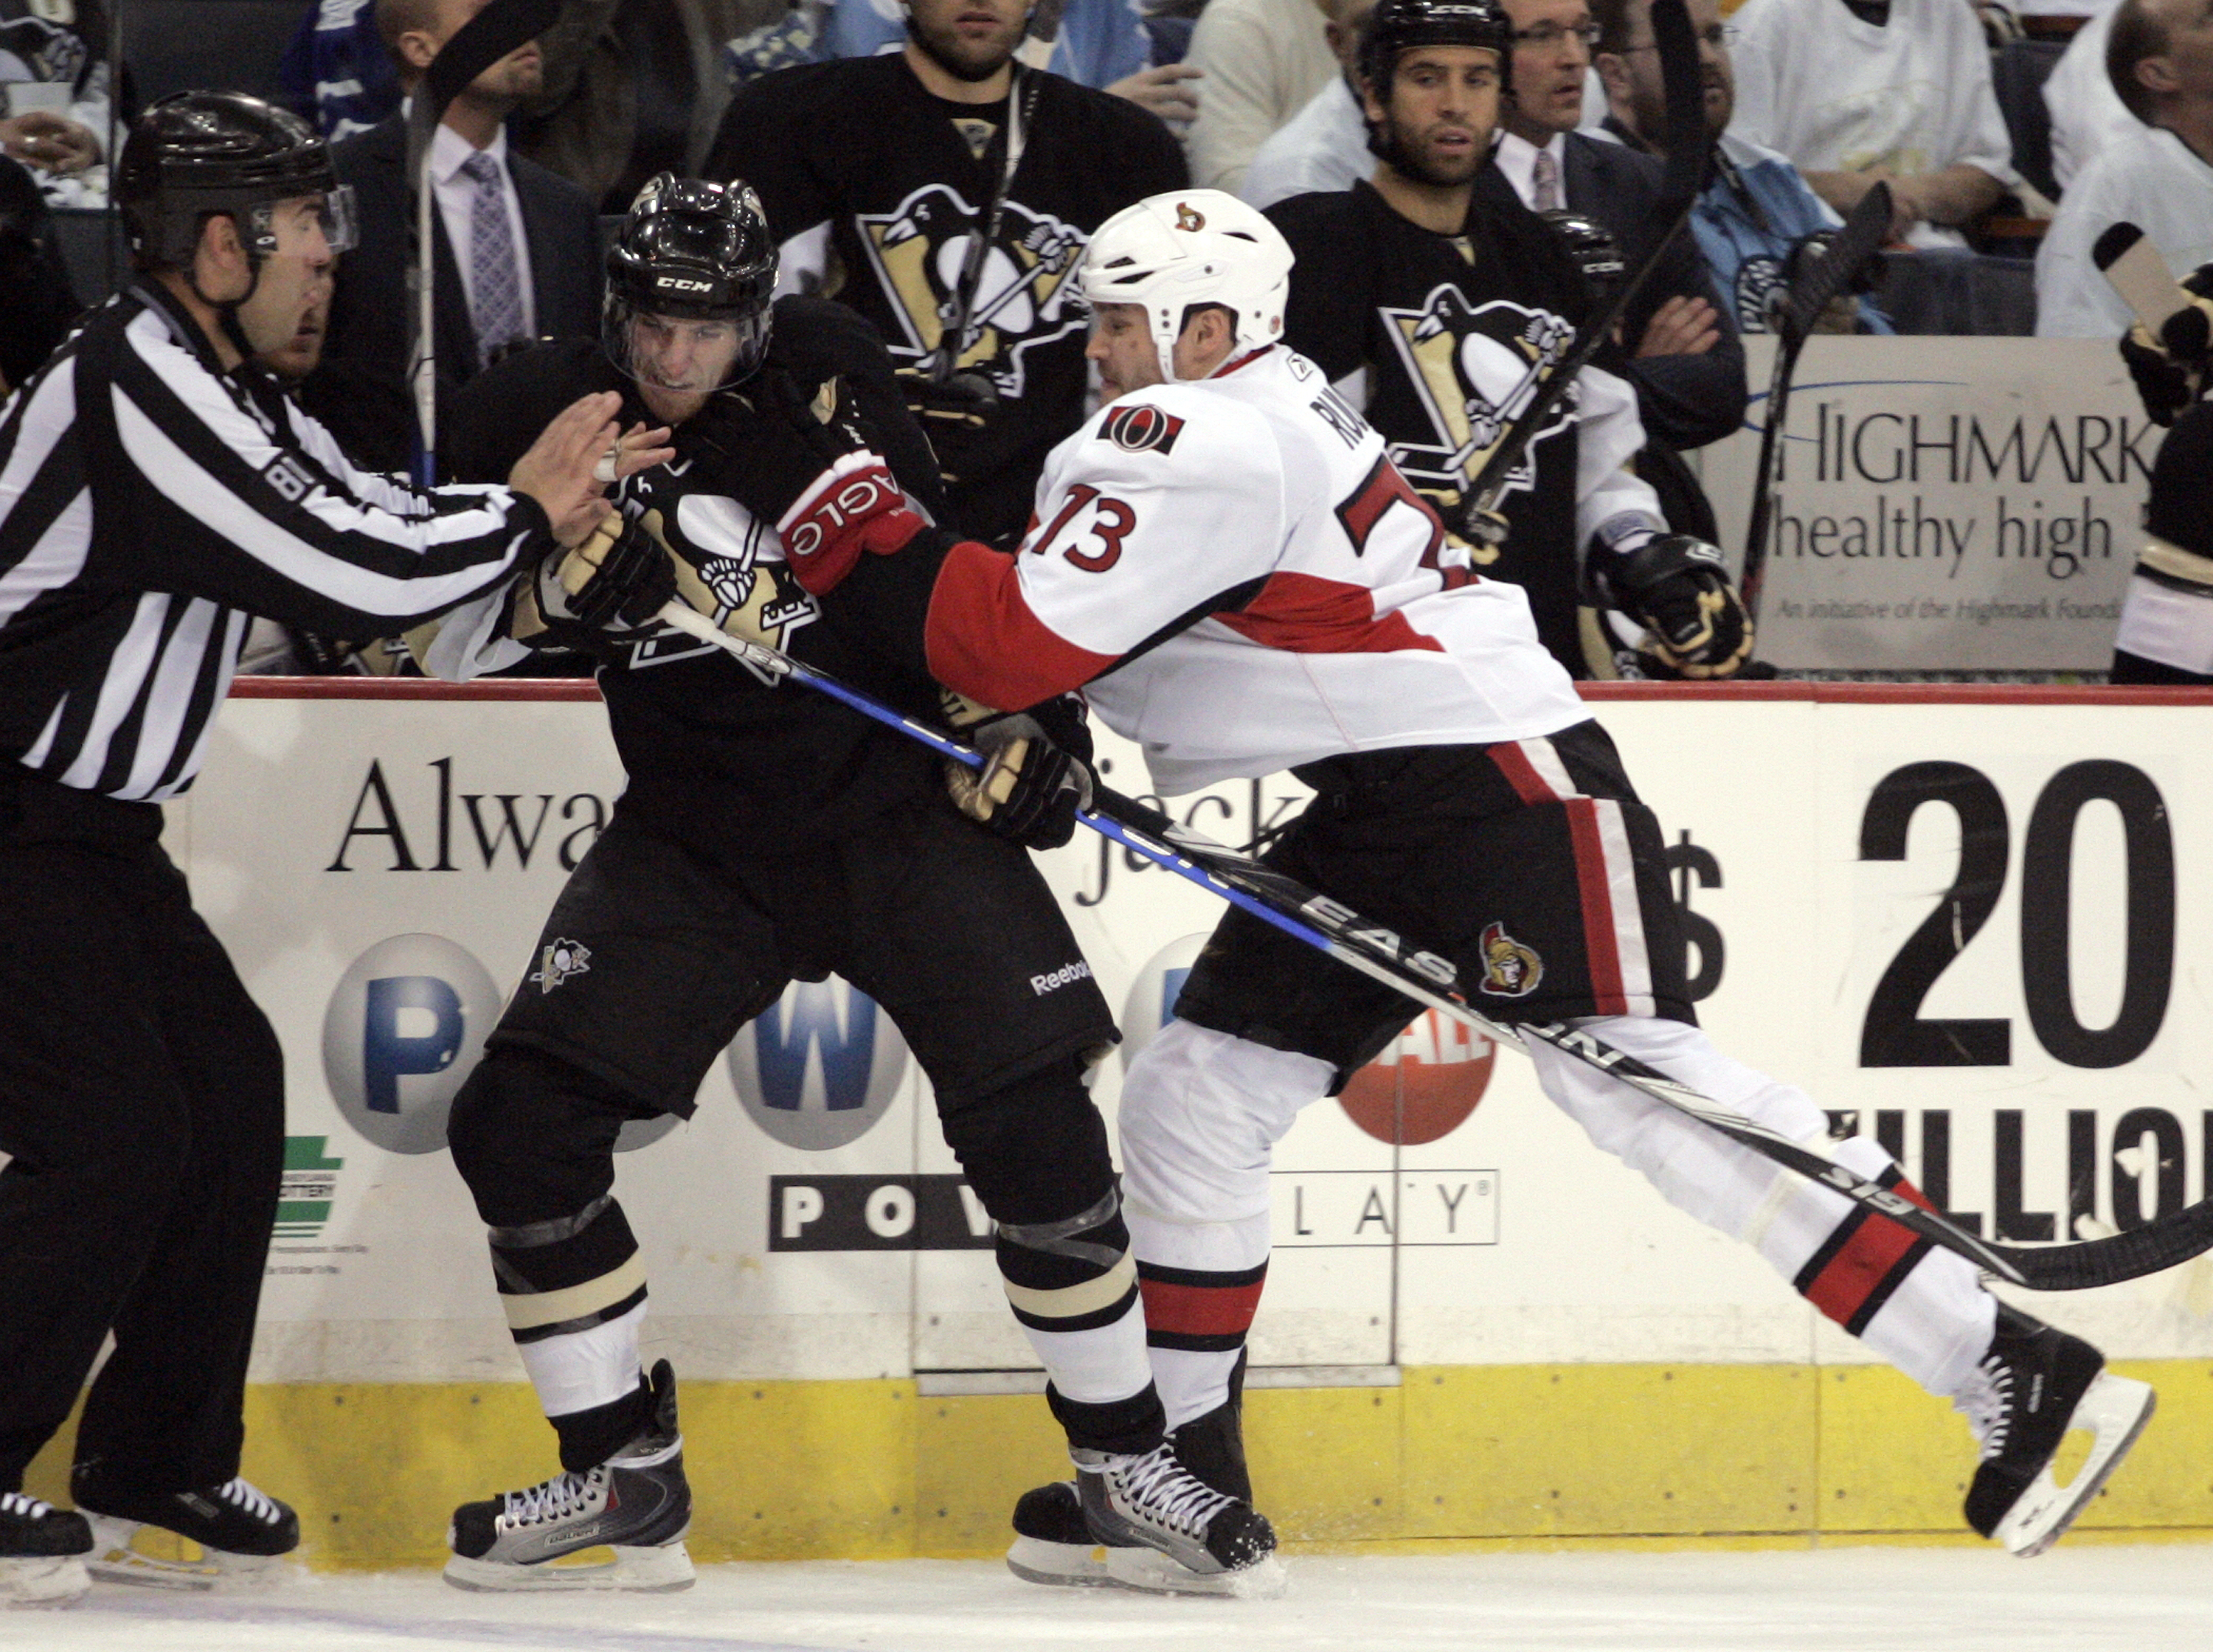 PITTSBURGH - APRIL 22:  Jarkko Ruutu #73 of the Ottawa Senators hits Alex Goligoski #3 of the Pittsburgh Penguins in Game Five of the Eastern Conference Quarterfinals during the 2010 NHL Stanley Cup Playoffs at Mellon Arena on April 22, 2010 in Pittsburgh